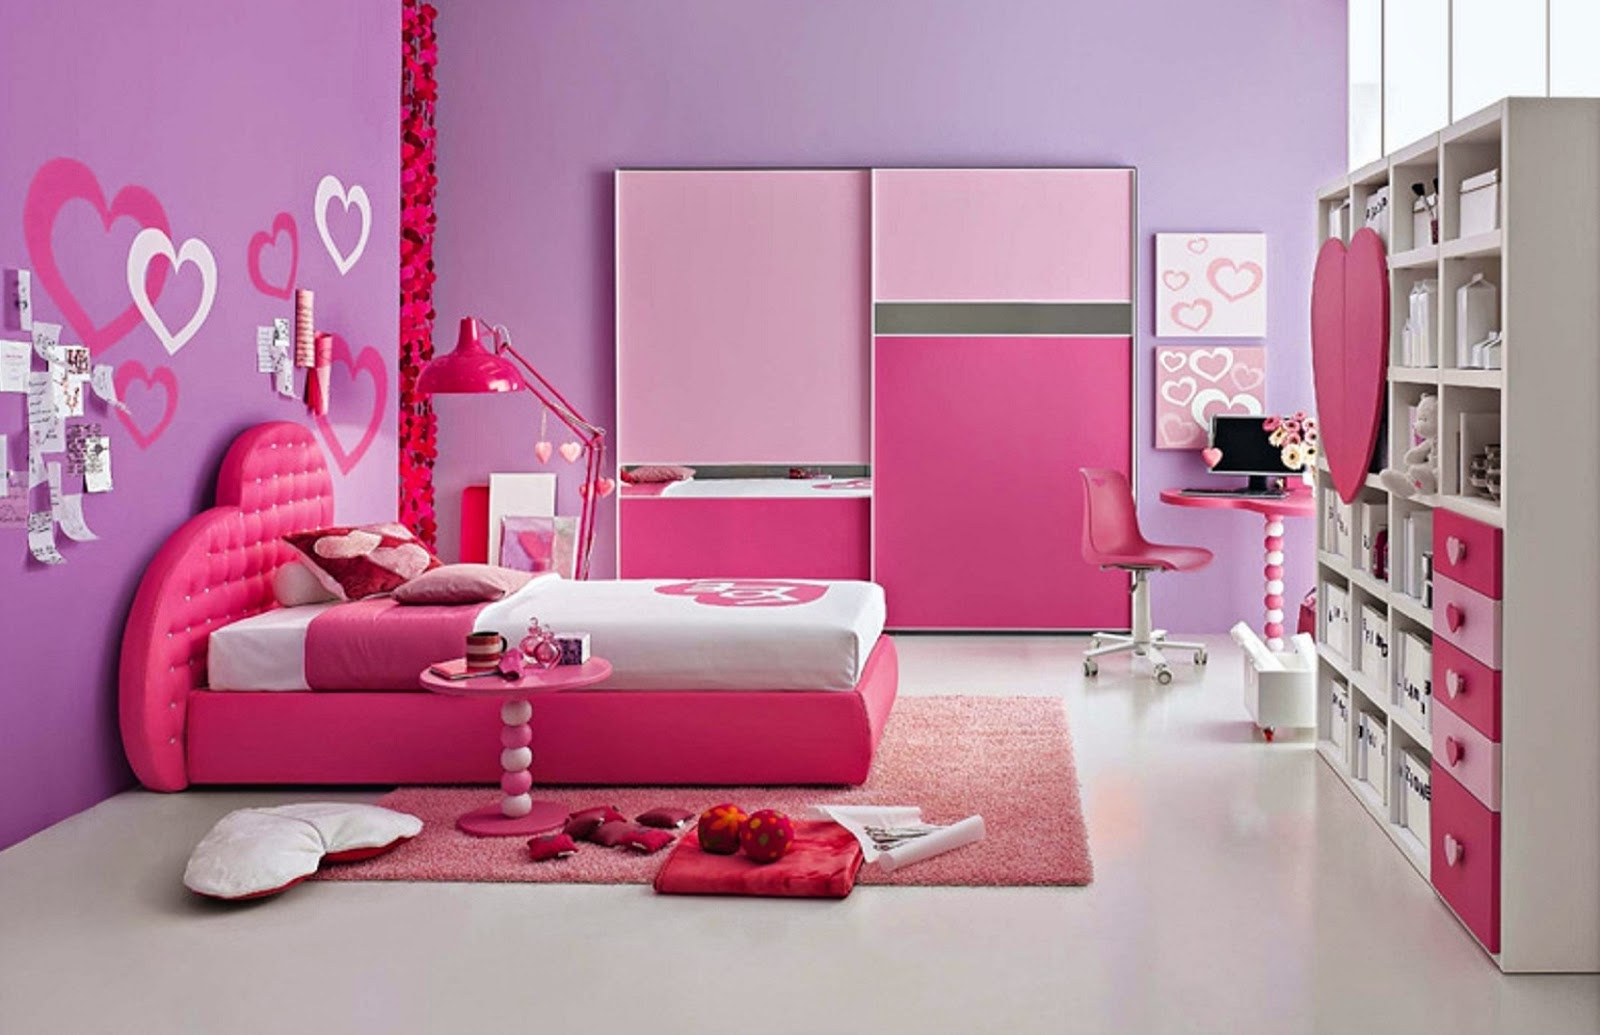 Best Bedroom Paint Color Ideas for Teenage Girls